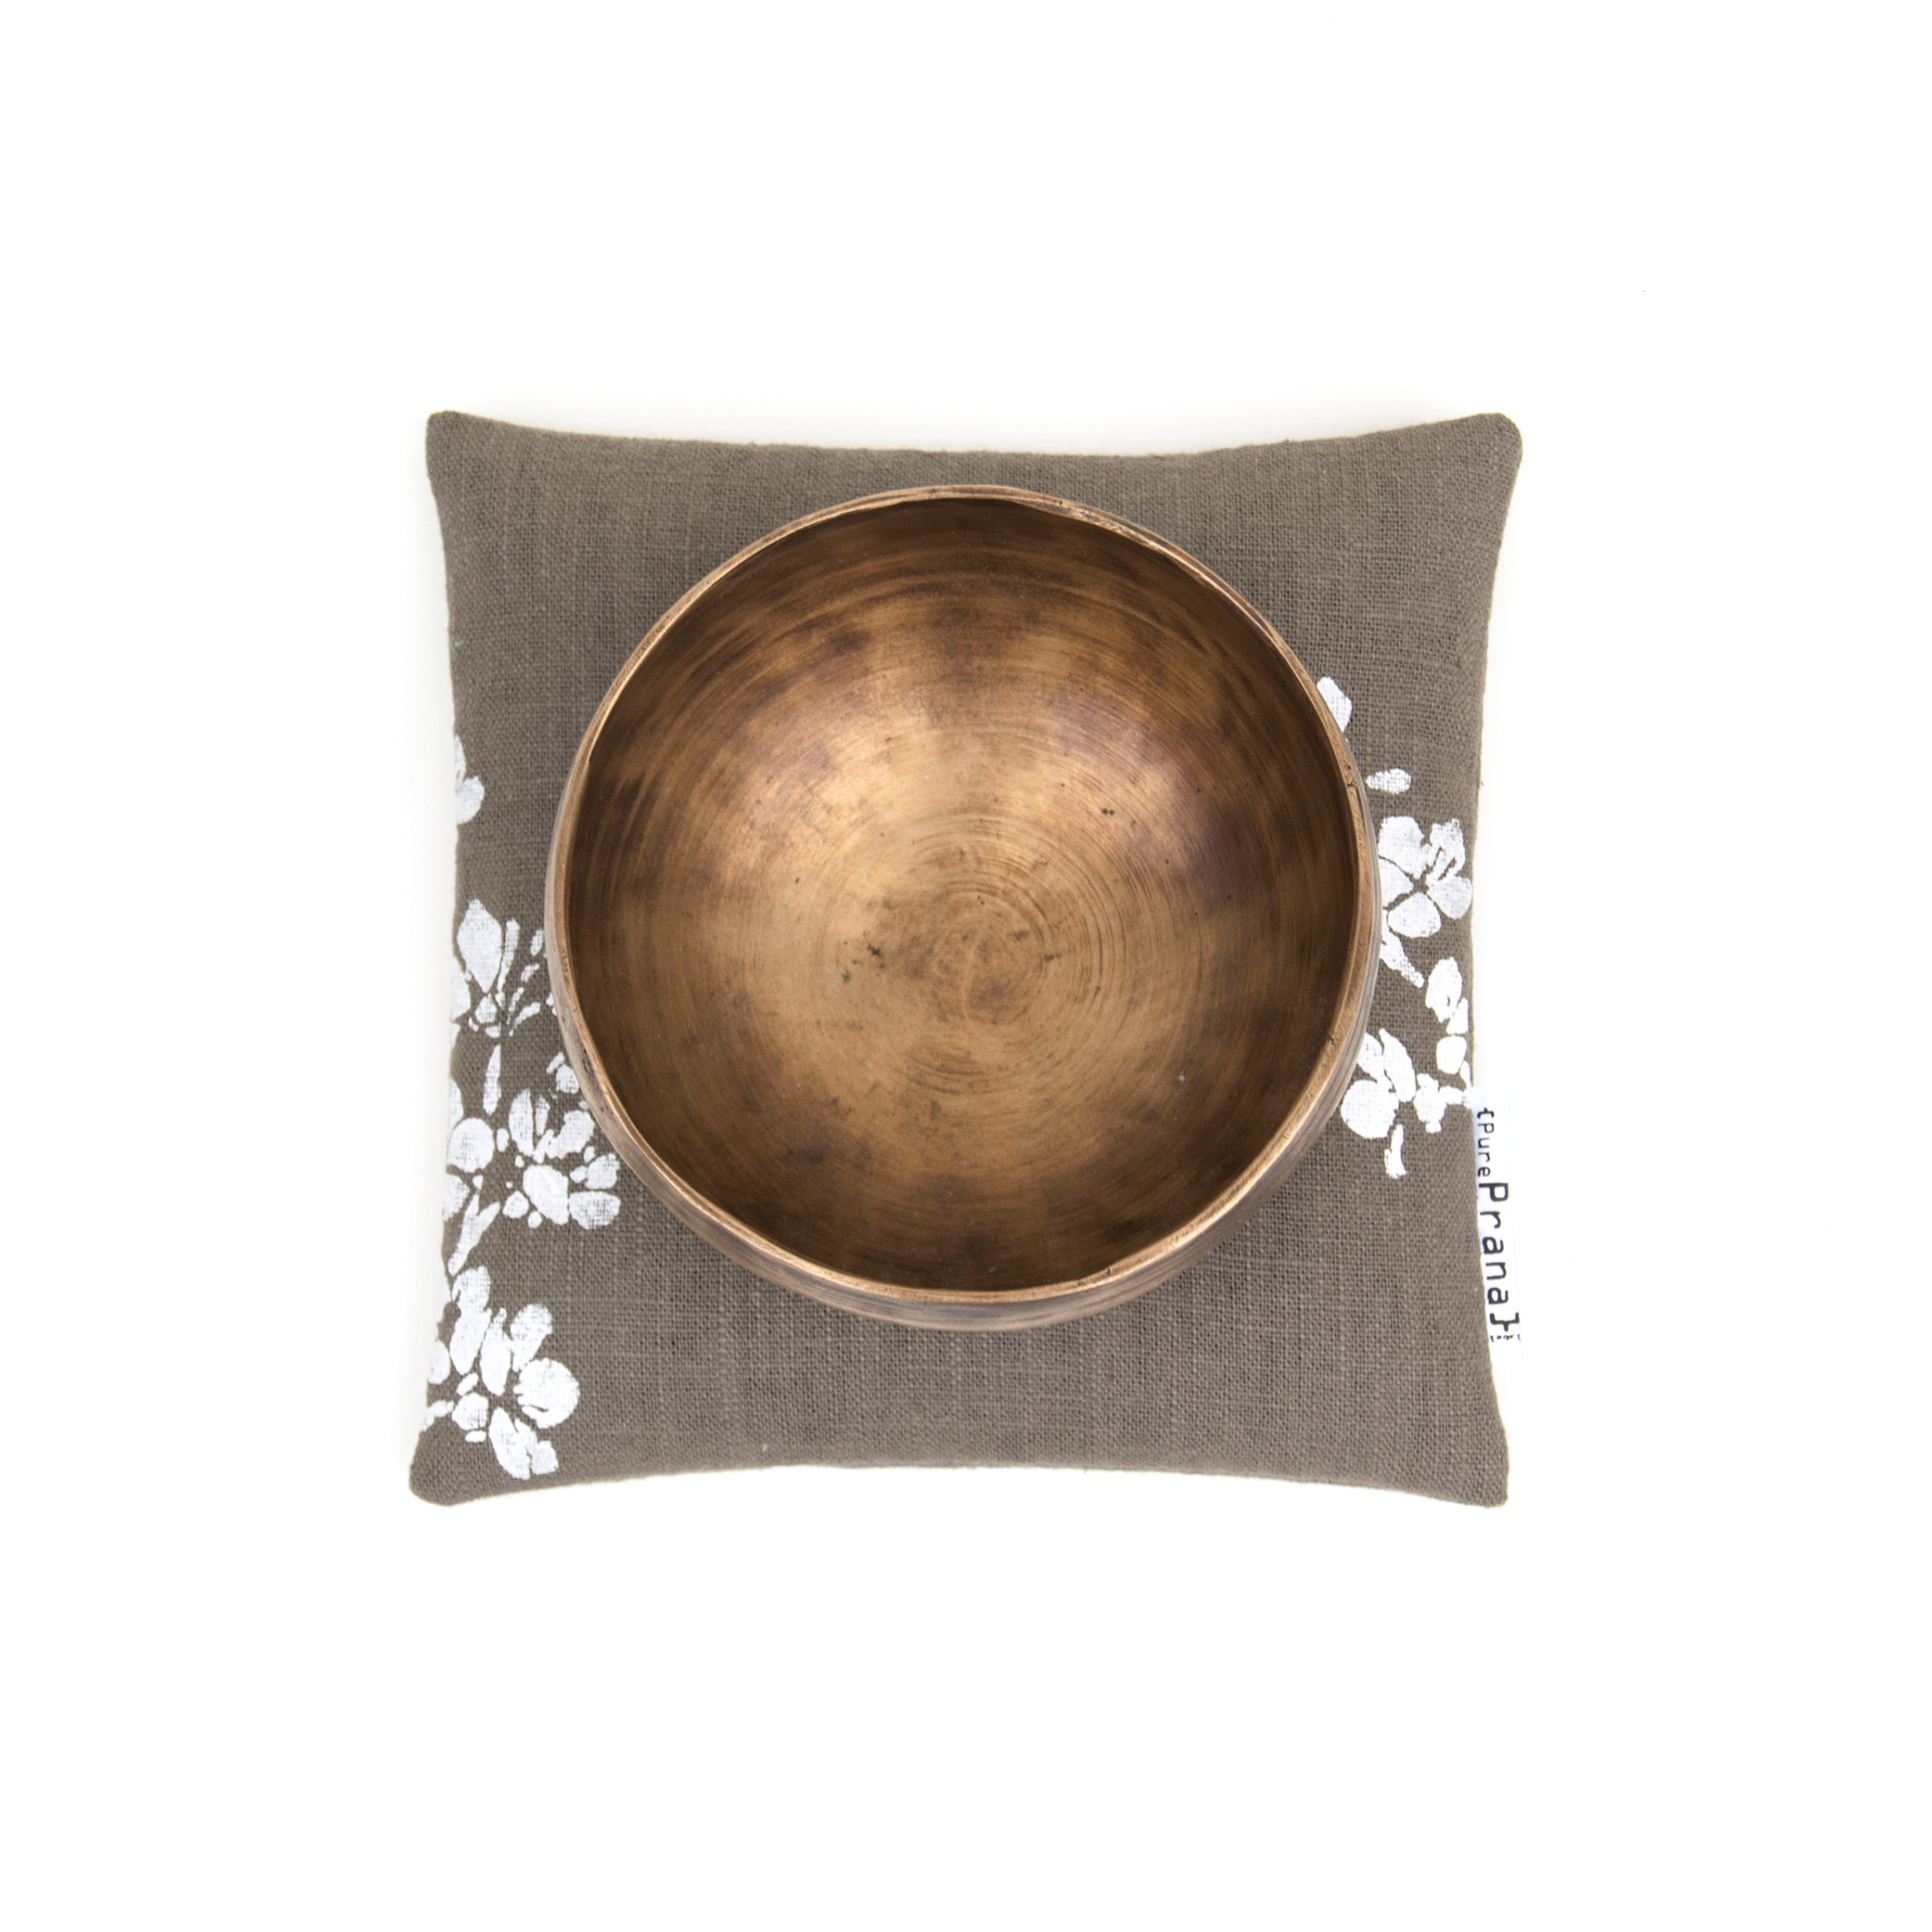 A flax linen singing bowl cushion, in olive green.